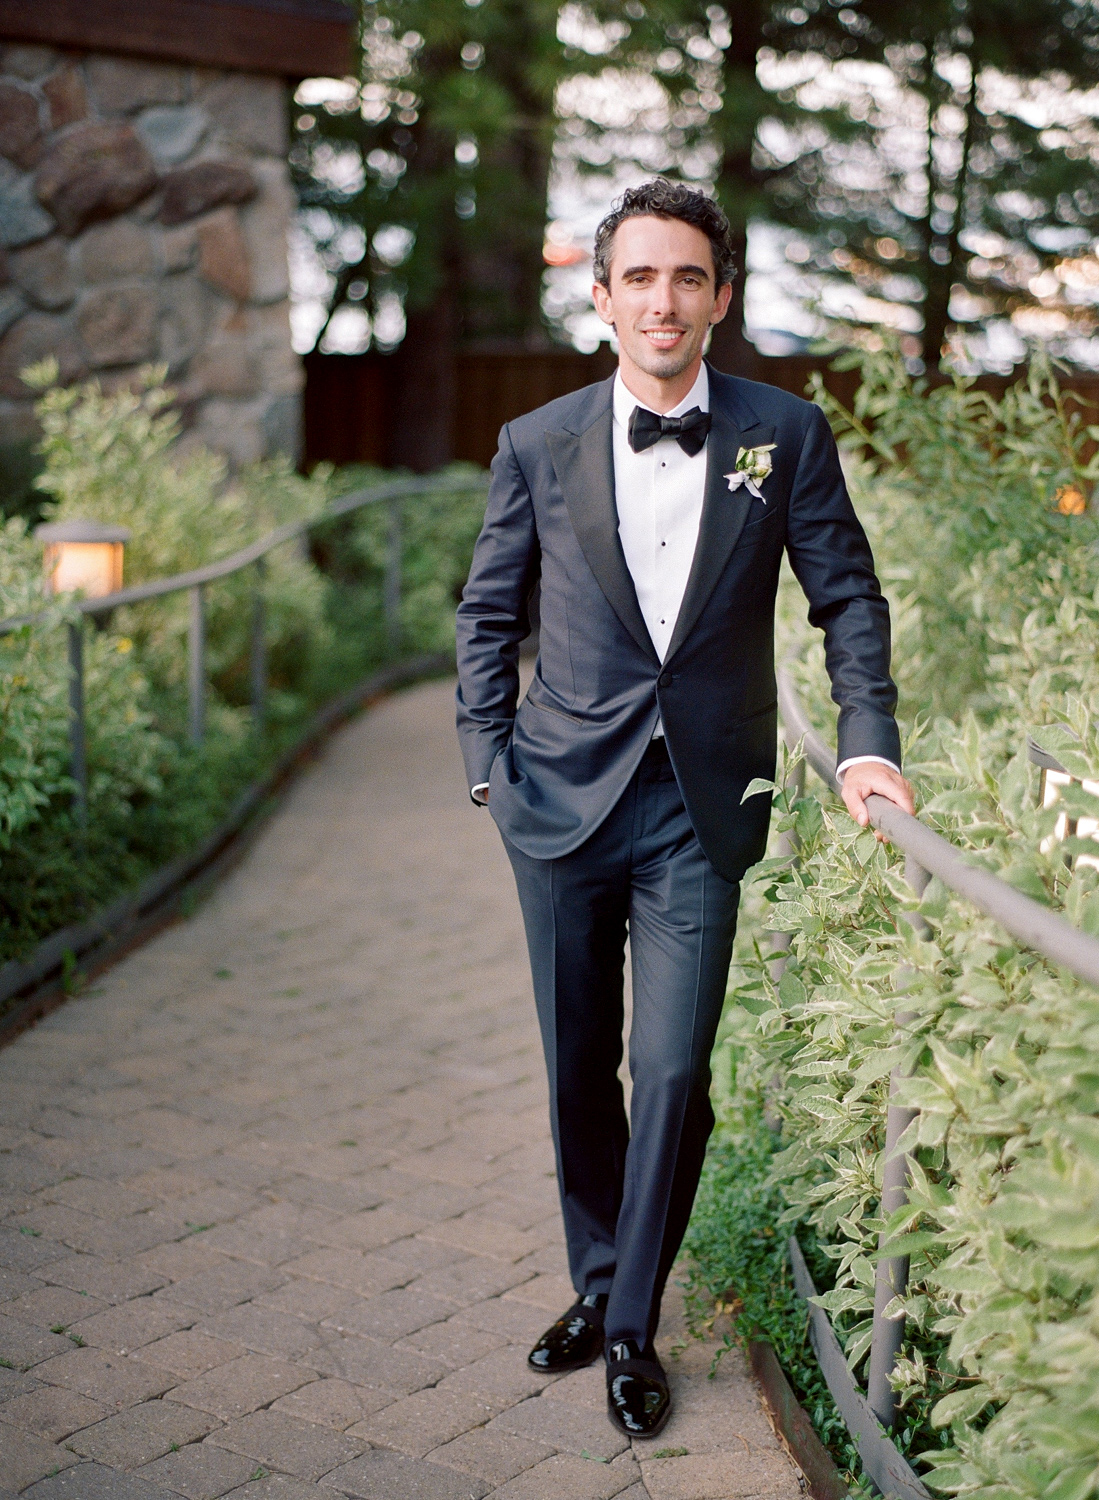 Natalie and Grant wedding groom's portrait on outdoor path